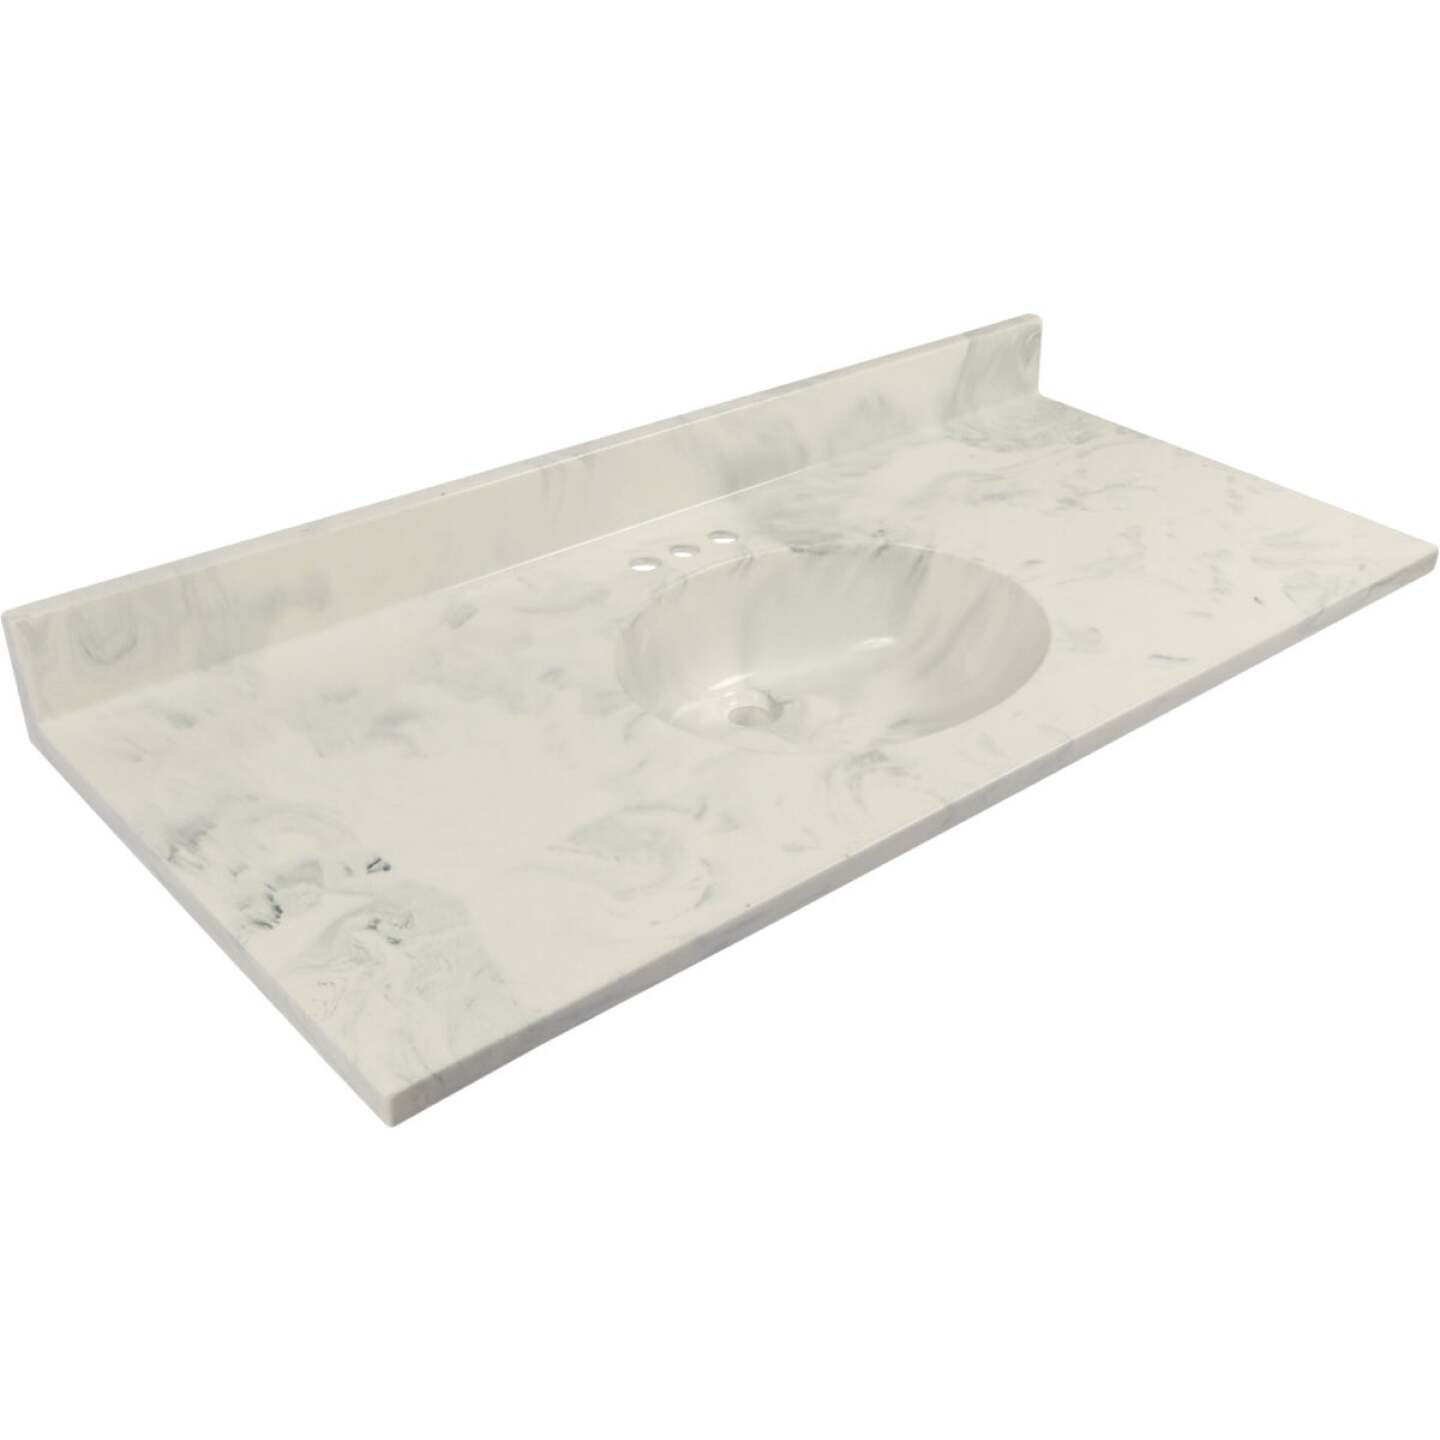 Modular Vanity Tops 49 In. W x 22 In. D Marbled Dove Gray Cultured Marble Vanity Top with Oval Bowl Image 1